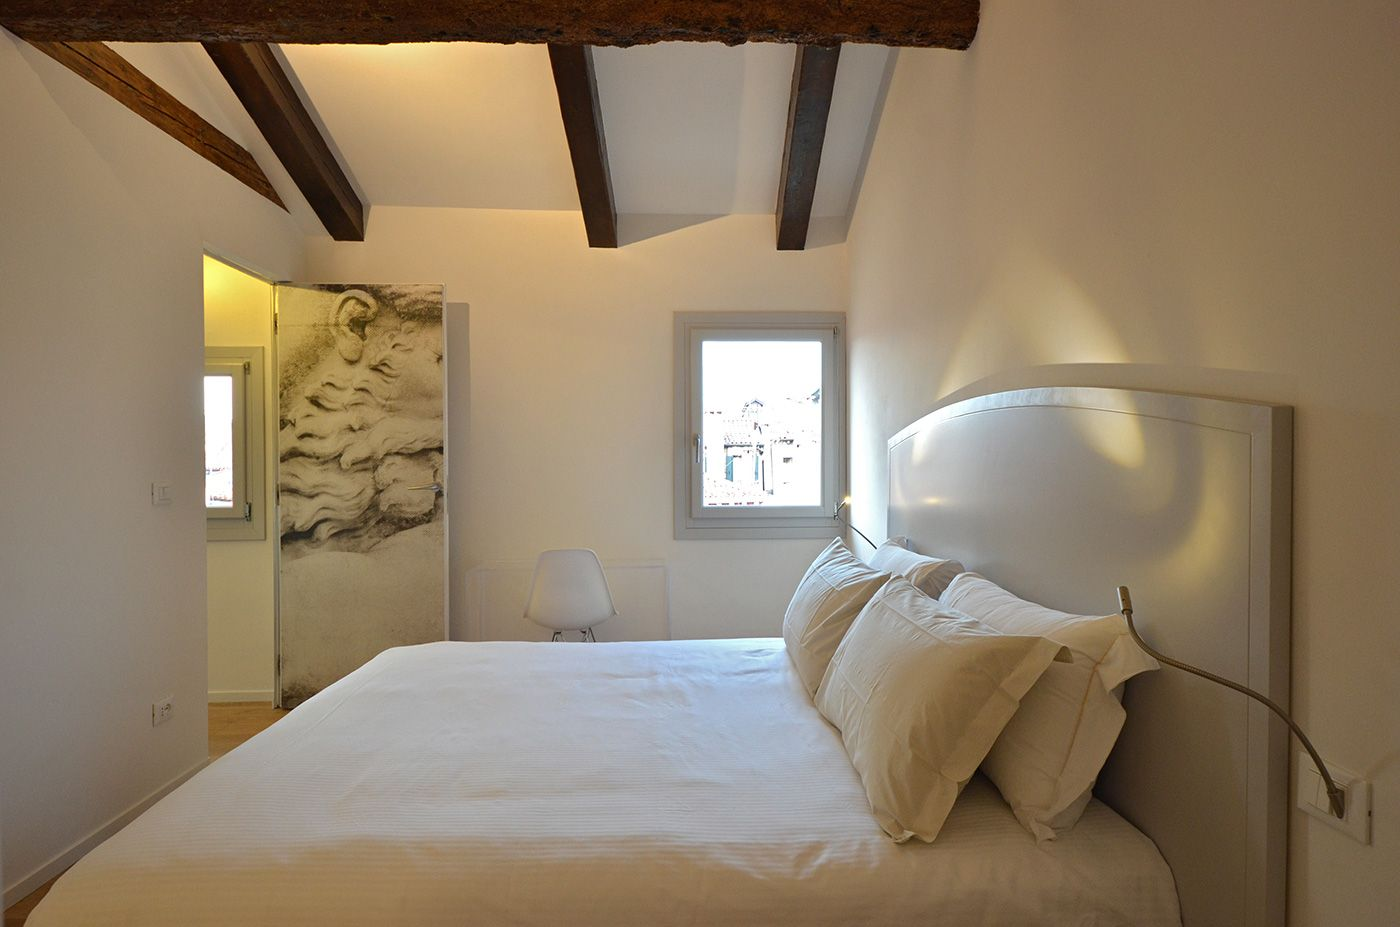 the bedroom features view on the roof-tops and wooden beams